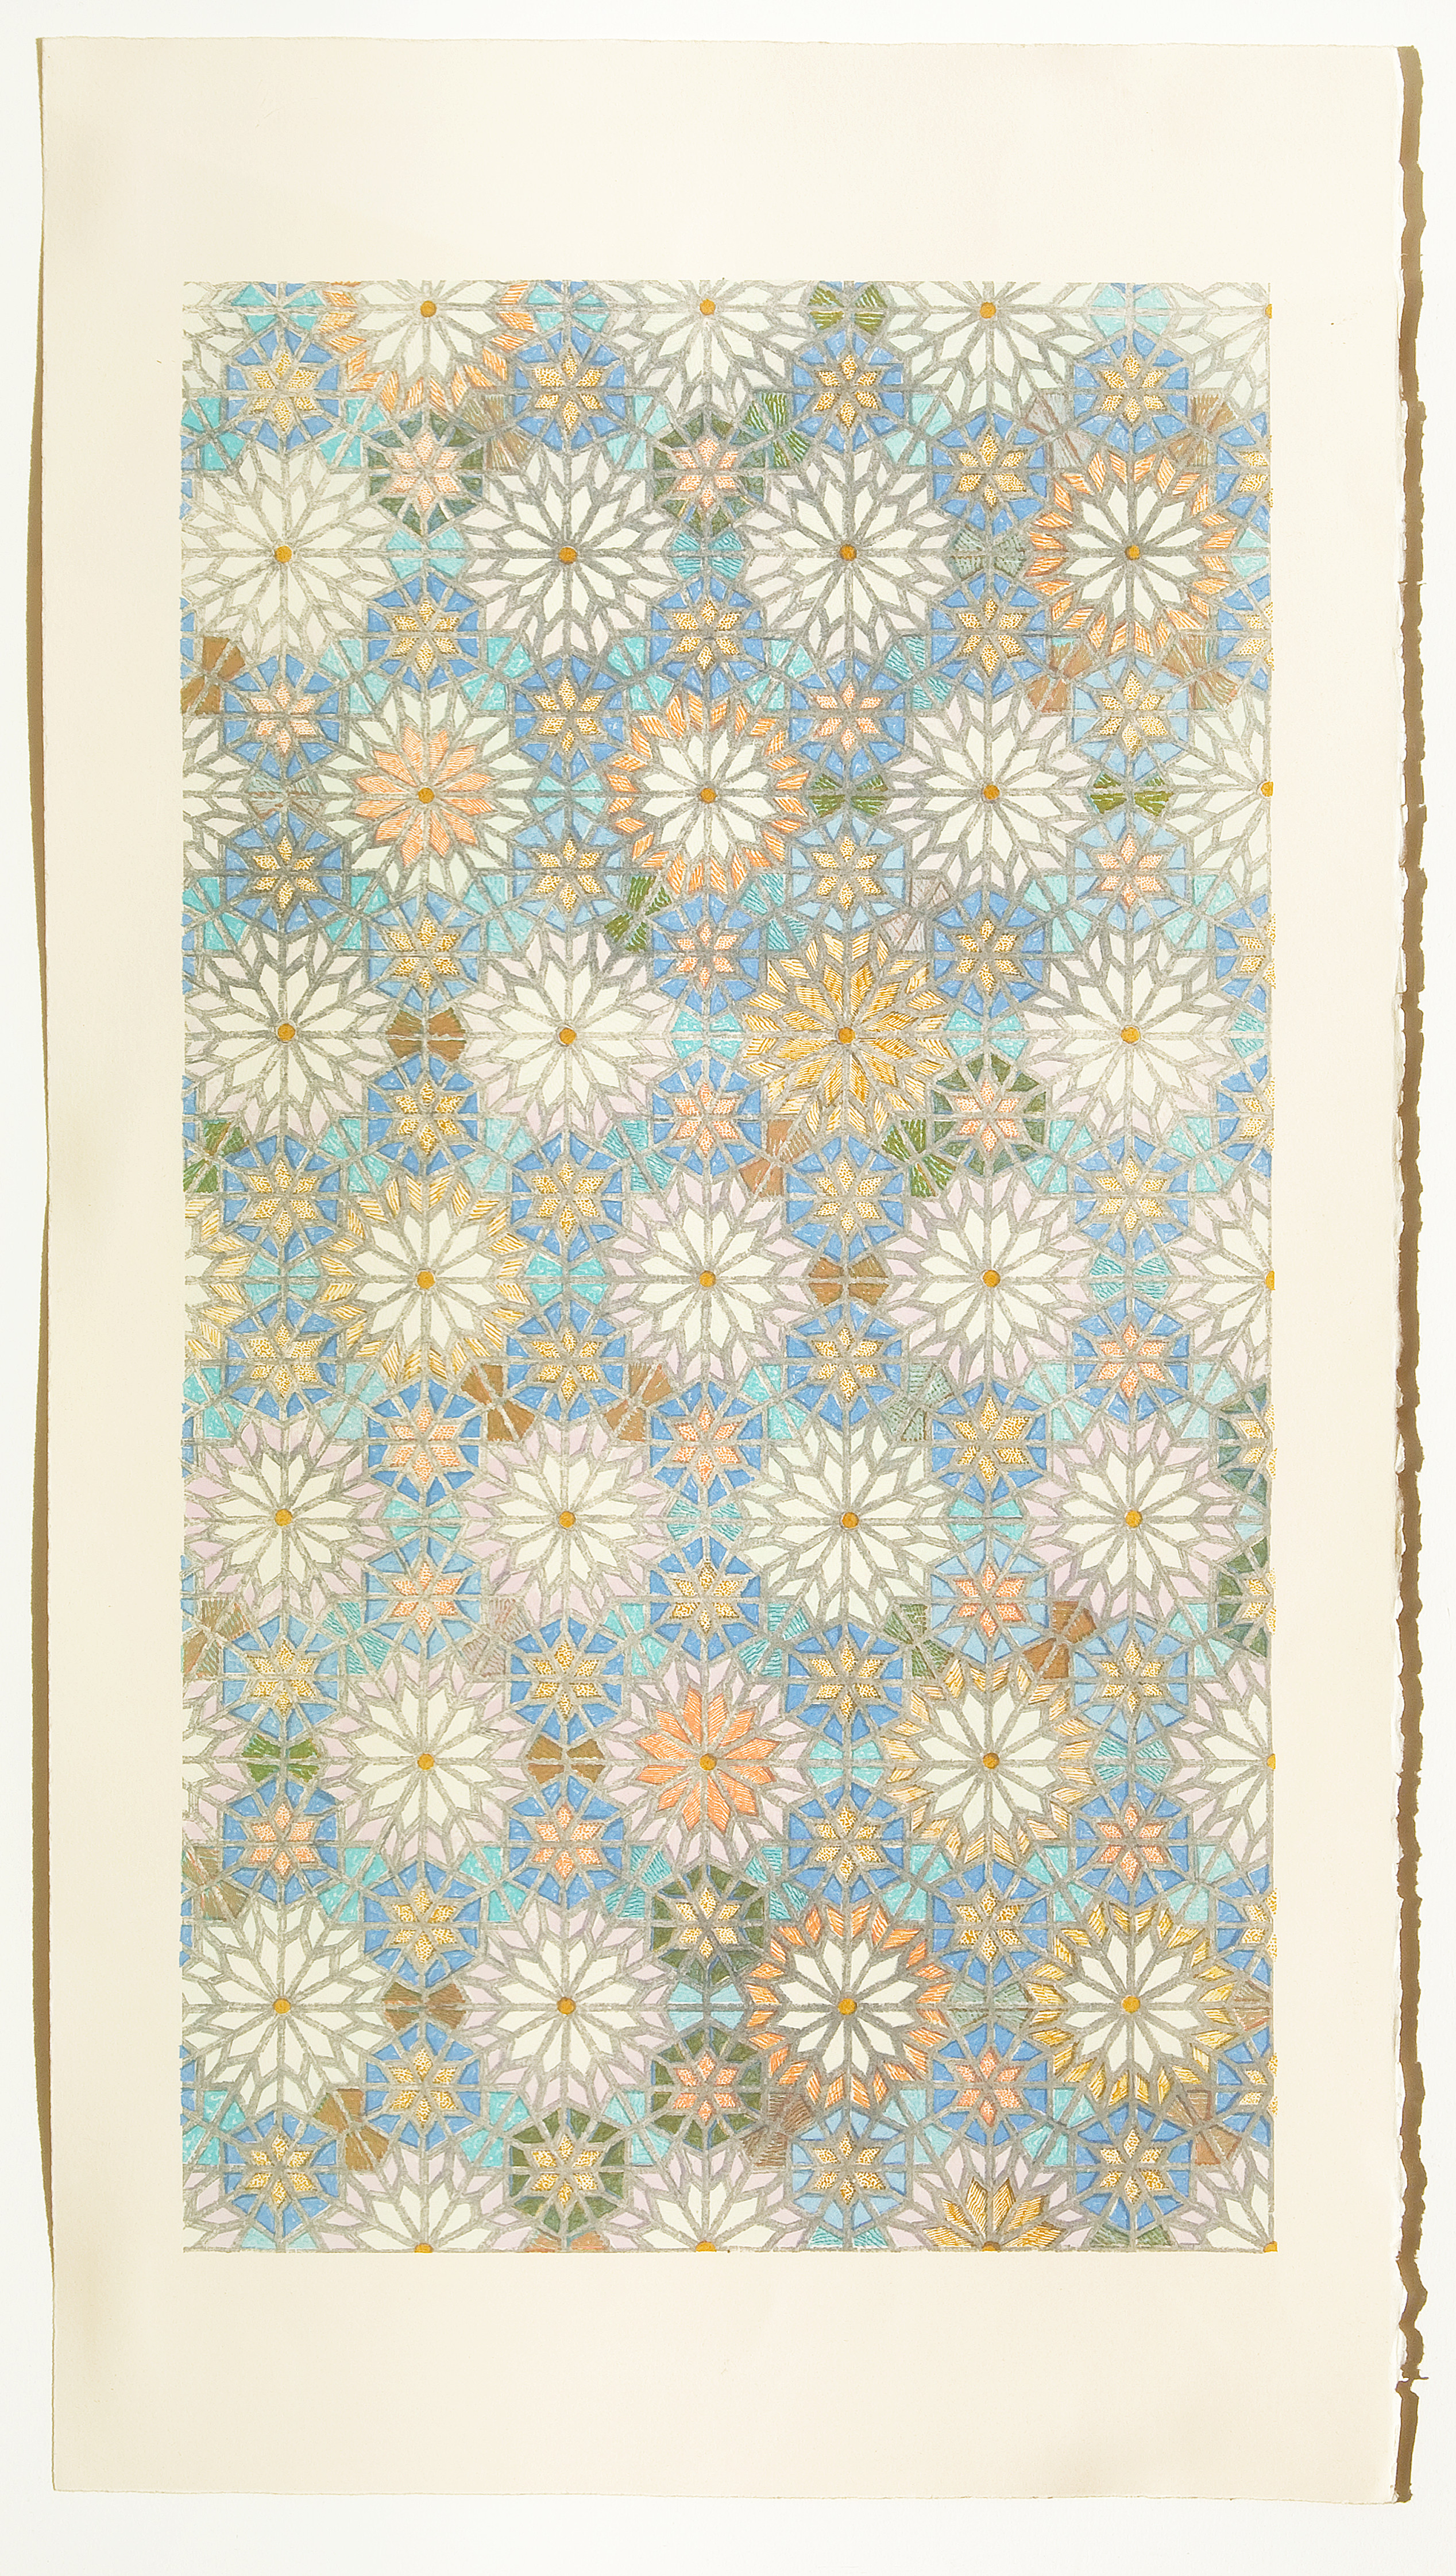 A large, vertical lithograph featuring patterns of flowers or circular burts in colors of cream, orange, and blue.